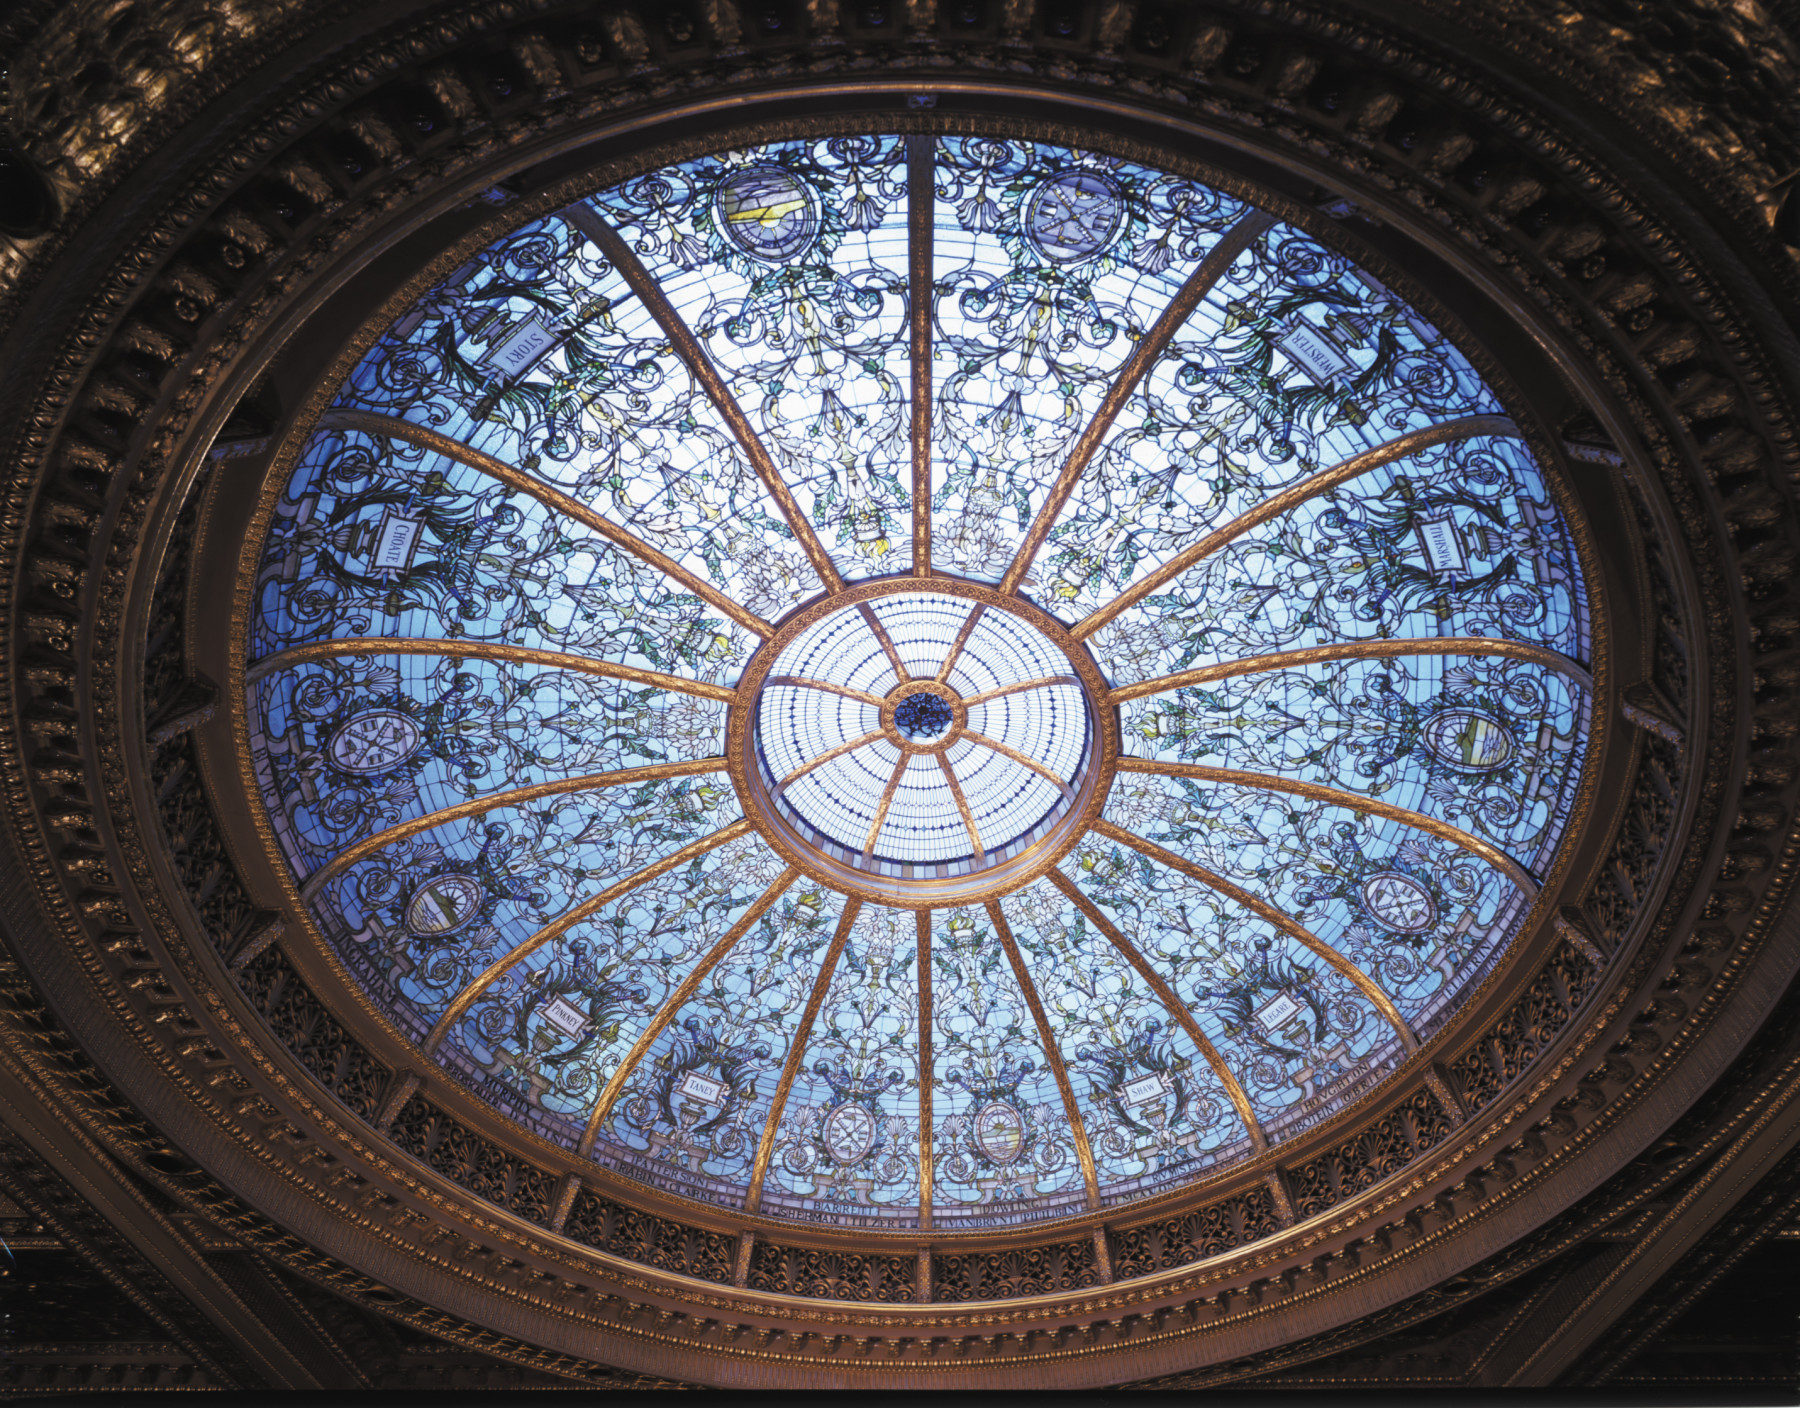 New York Appellate Court Lighting and Decorative Arts